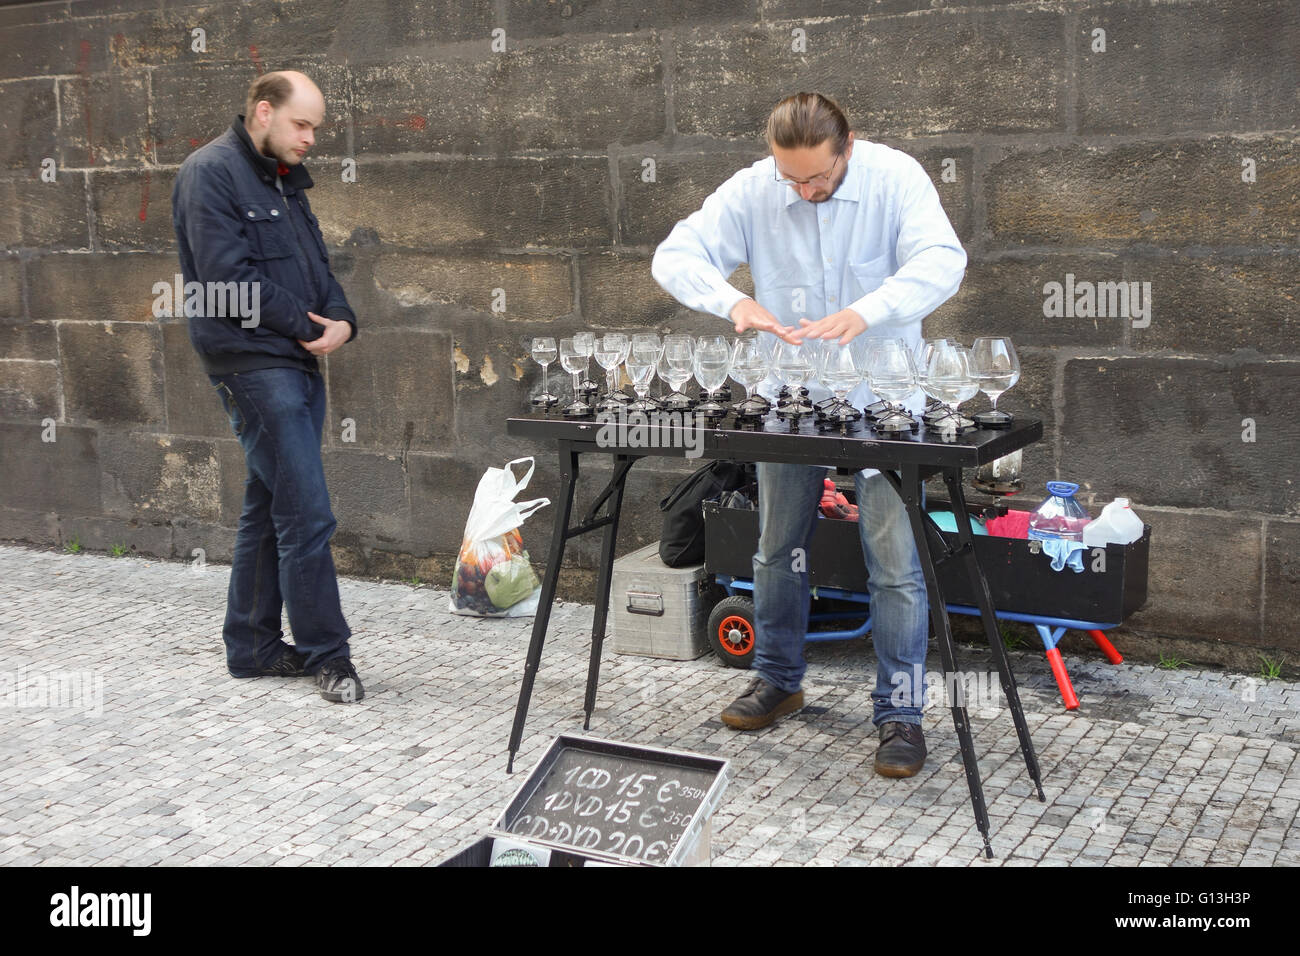 Glass harp - street entertainer playing music using wine glasses - Stock Image